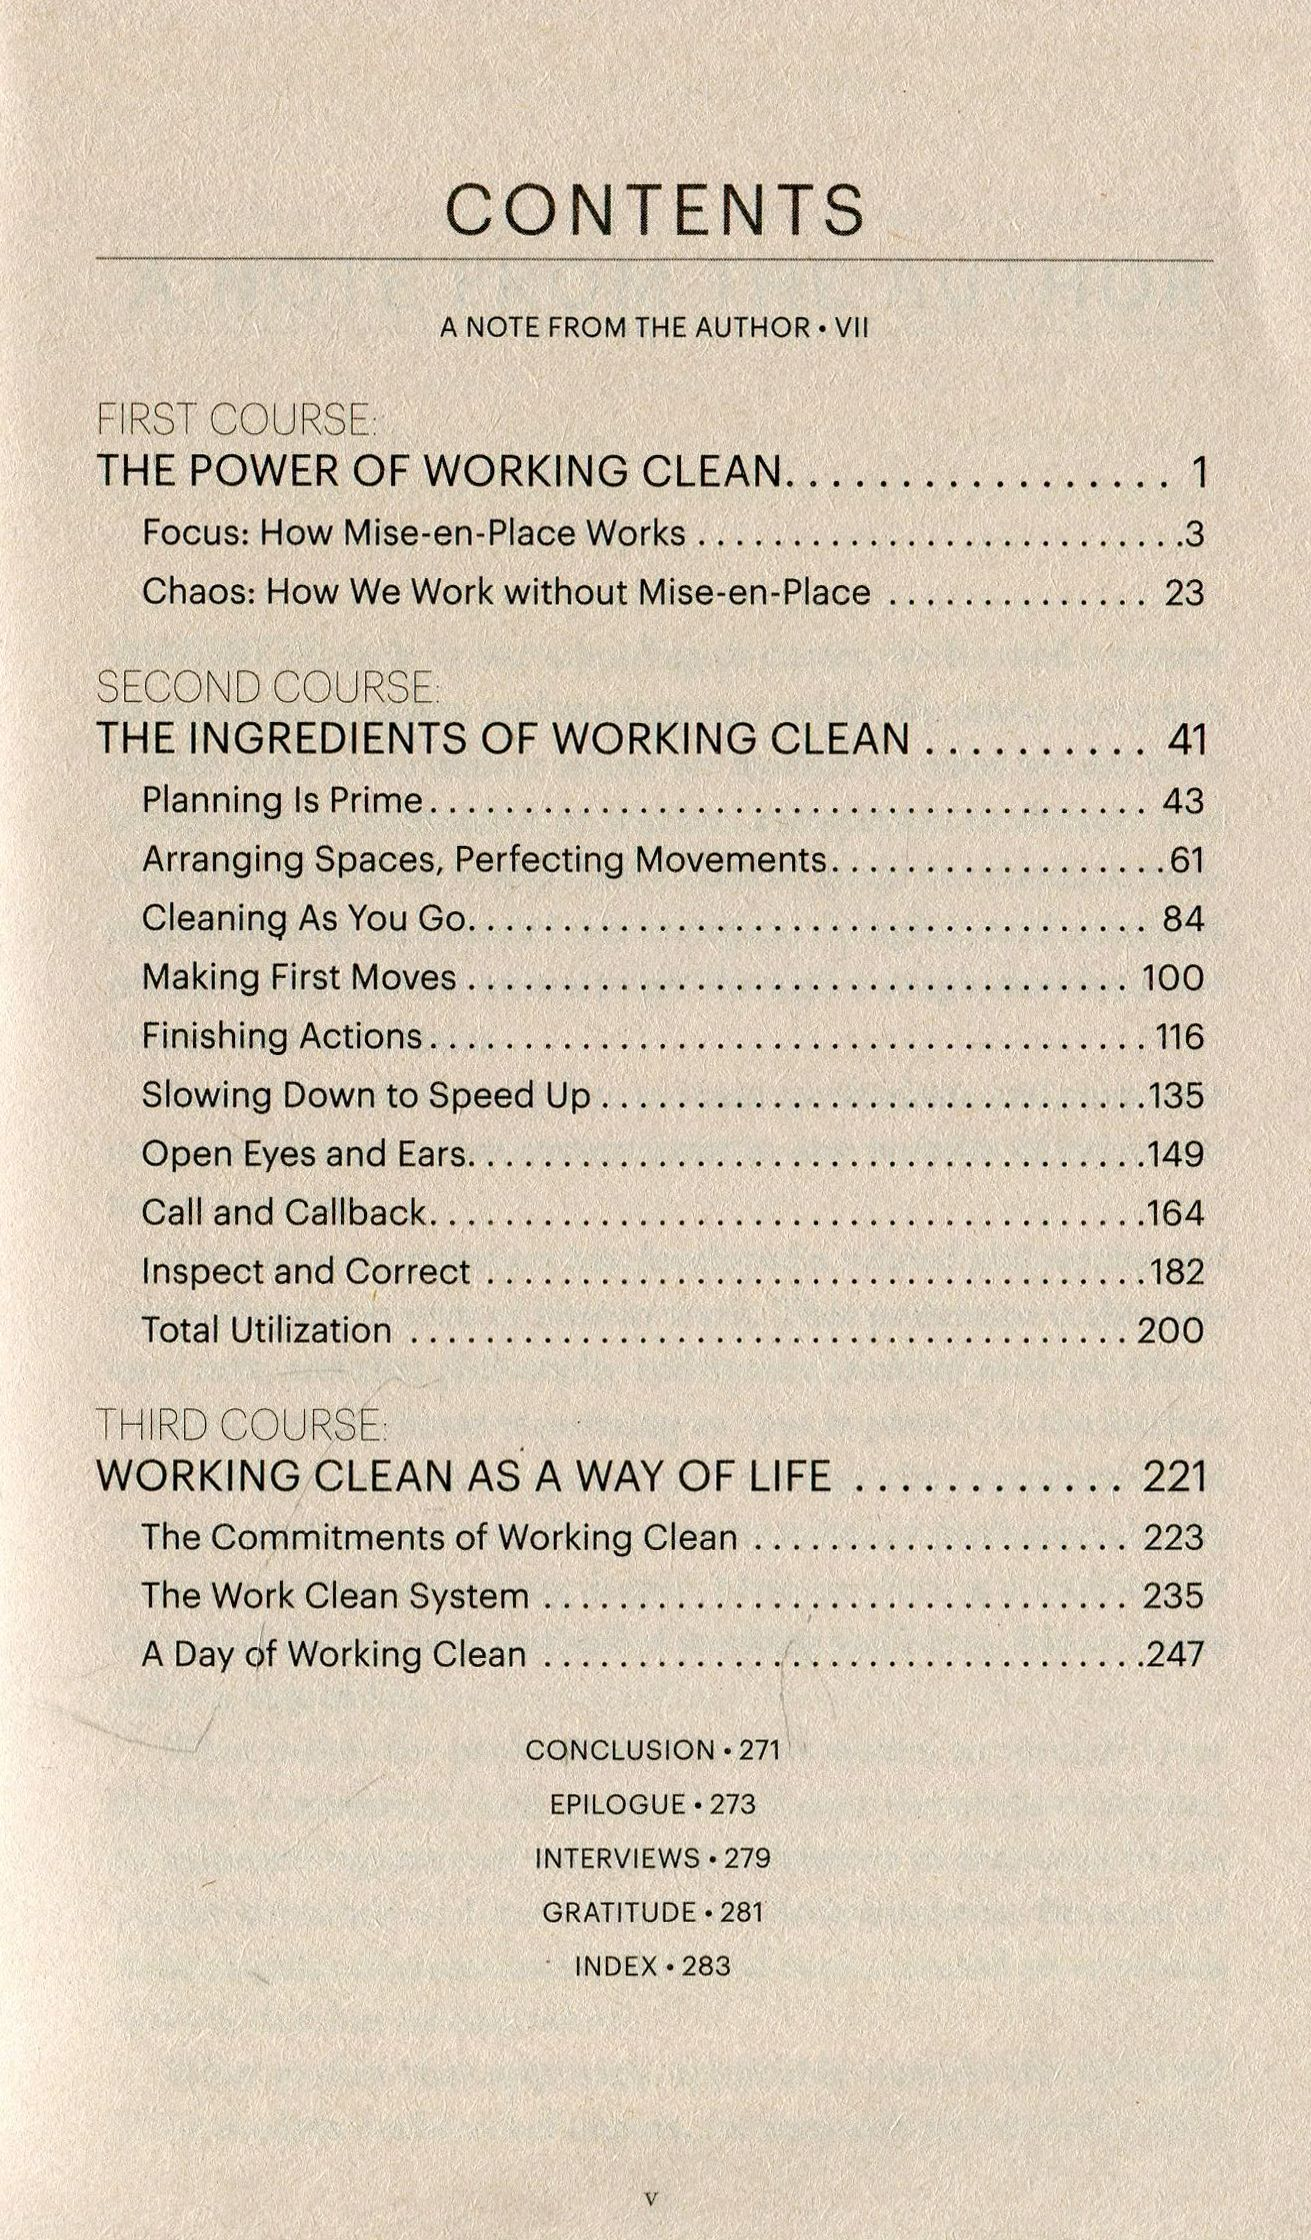 Книга «Work Clean: The Life-Changing Power of Mise-en-Place to Organize Your Life, Work and Mind», автора Ден Чарнас – фото №2 - мініатюра